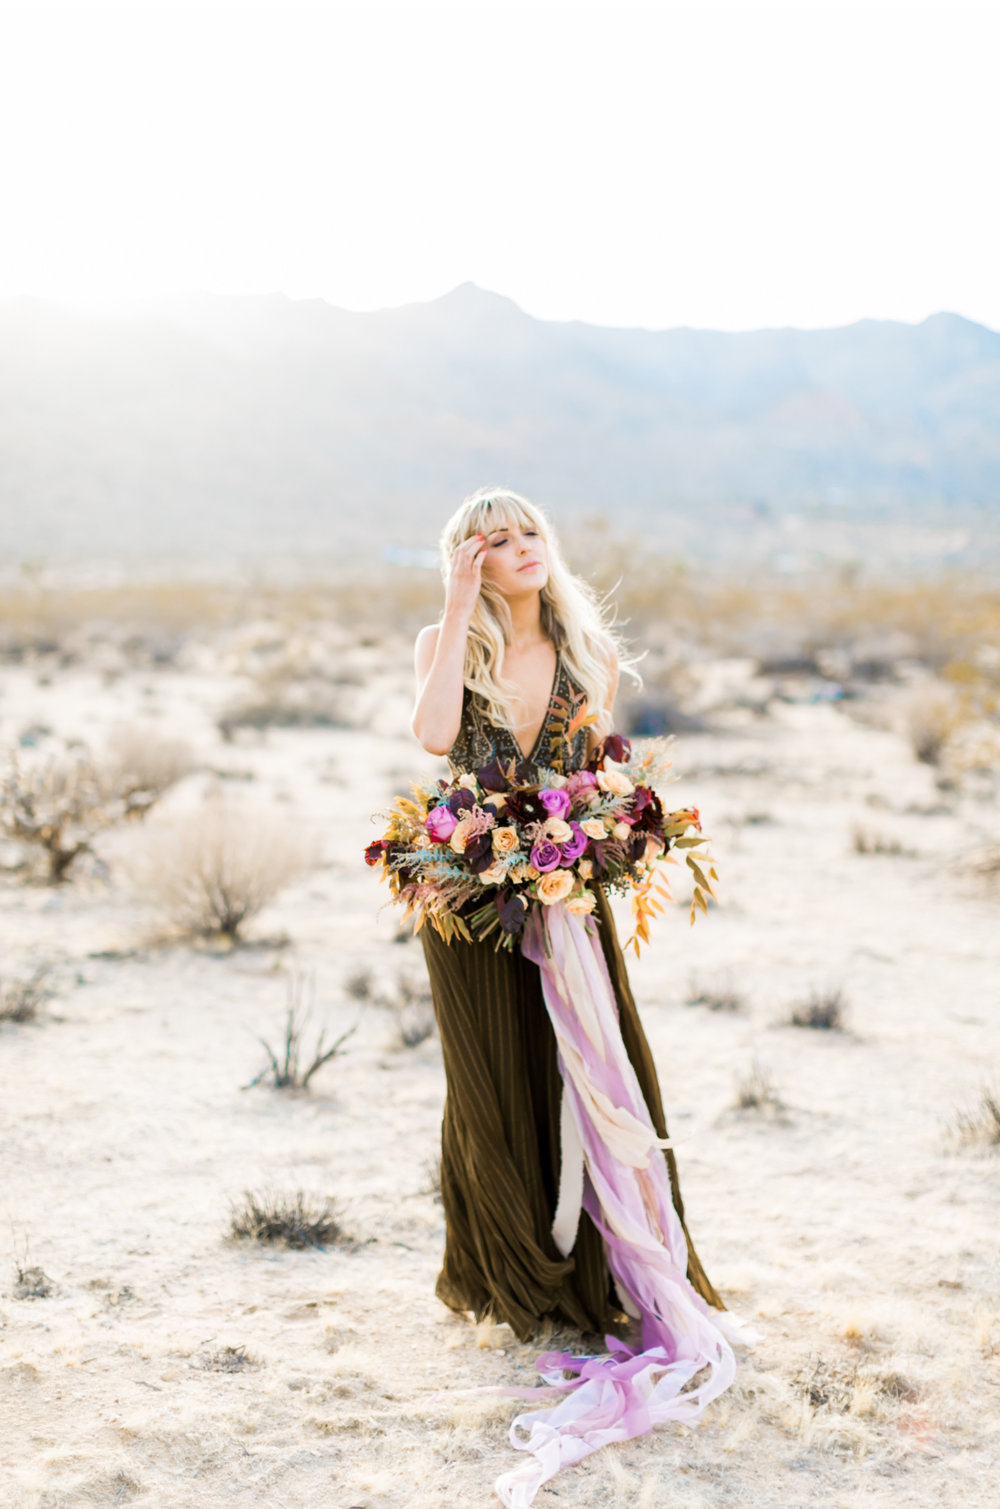 Southern-California-Elopement-Natalie-Schutt-Photography-Joshua-Tree_01.jpg